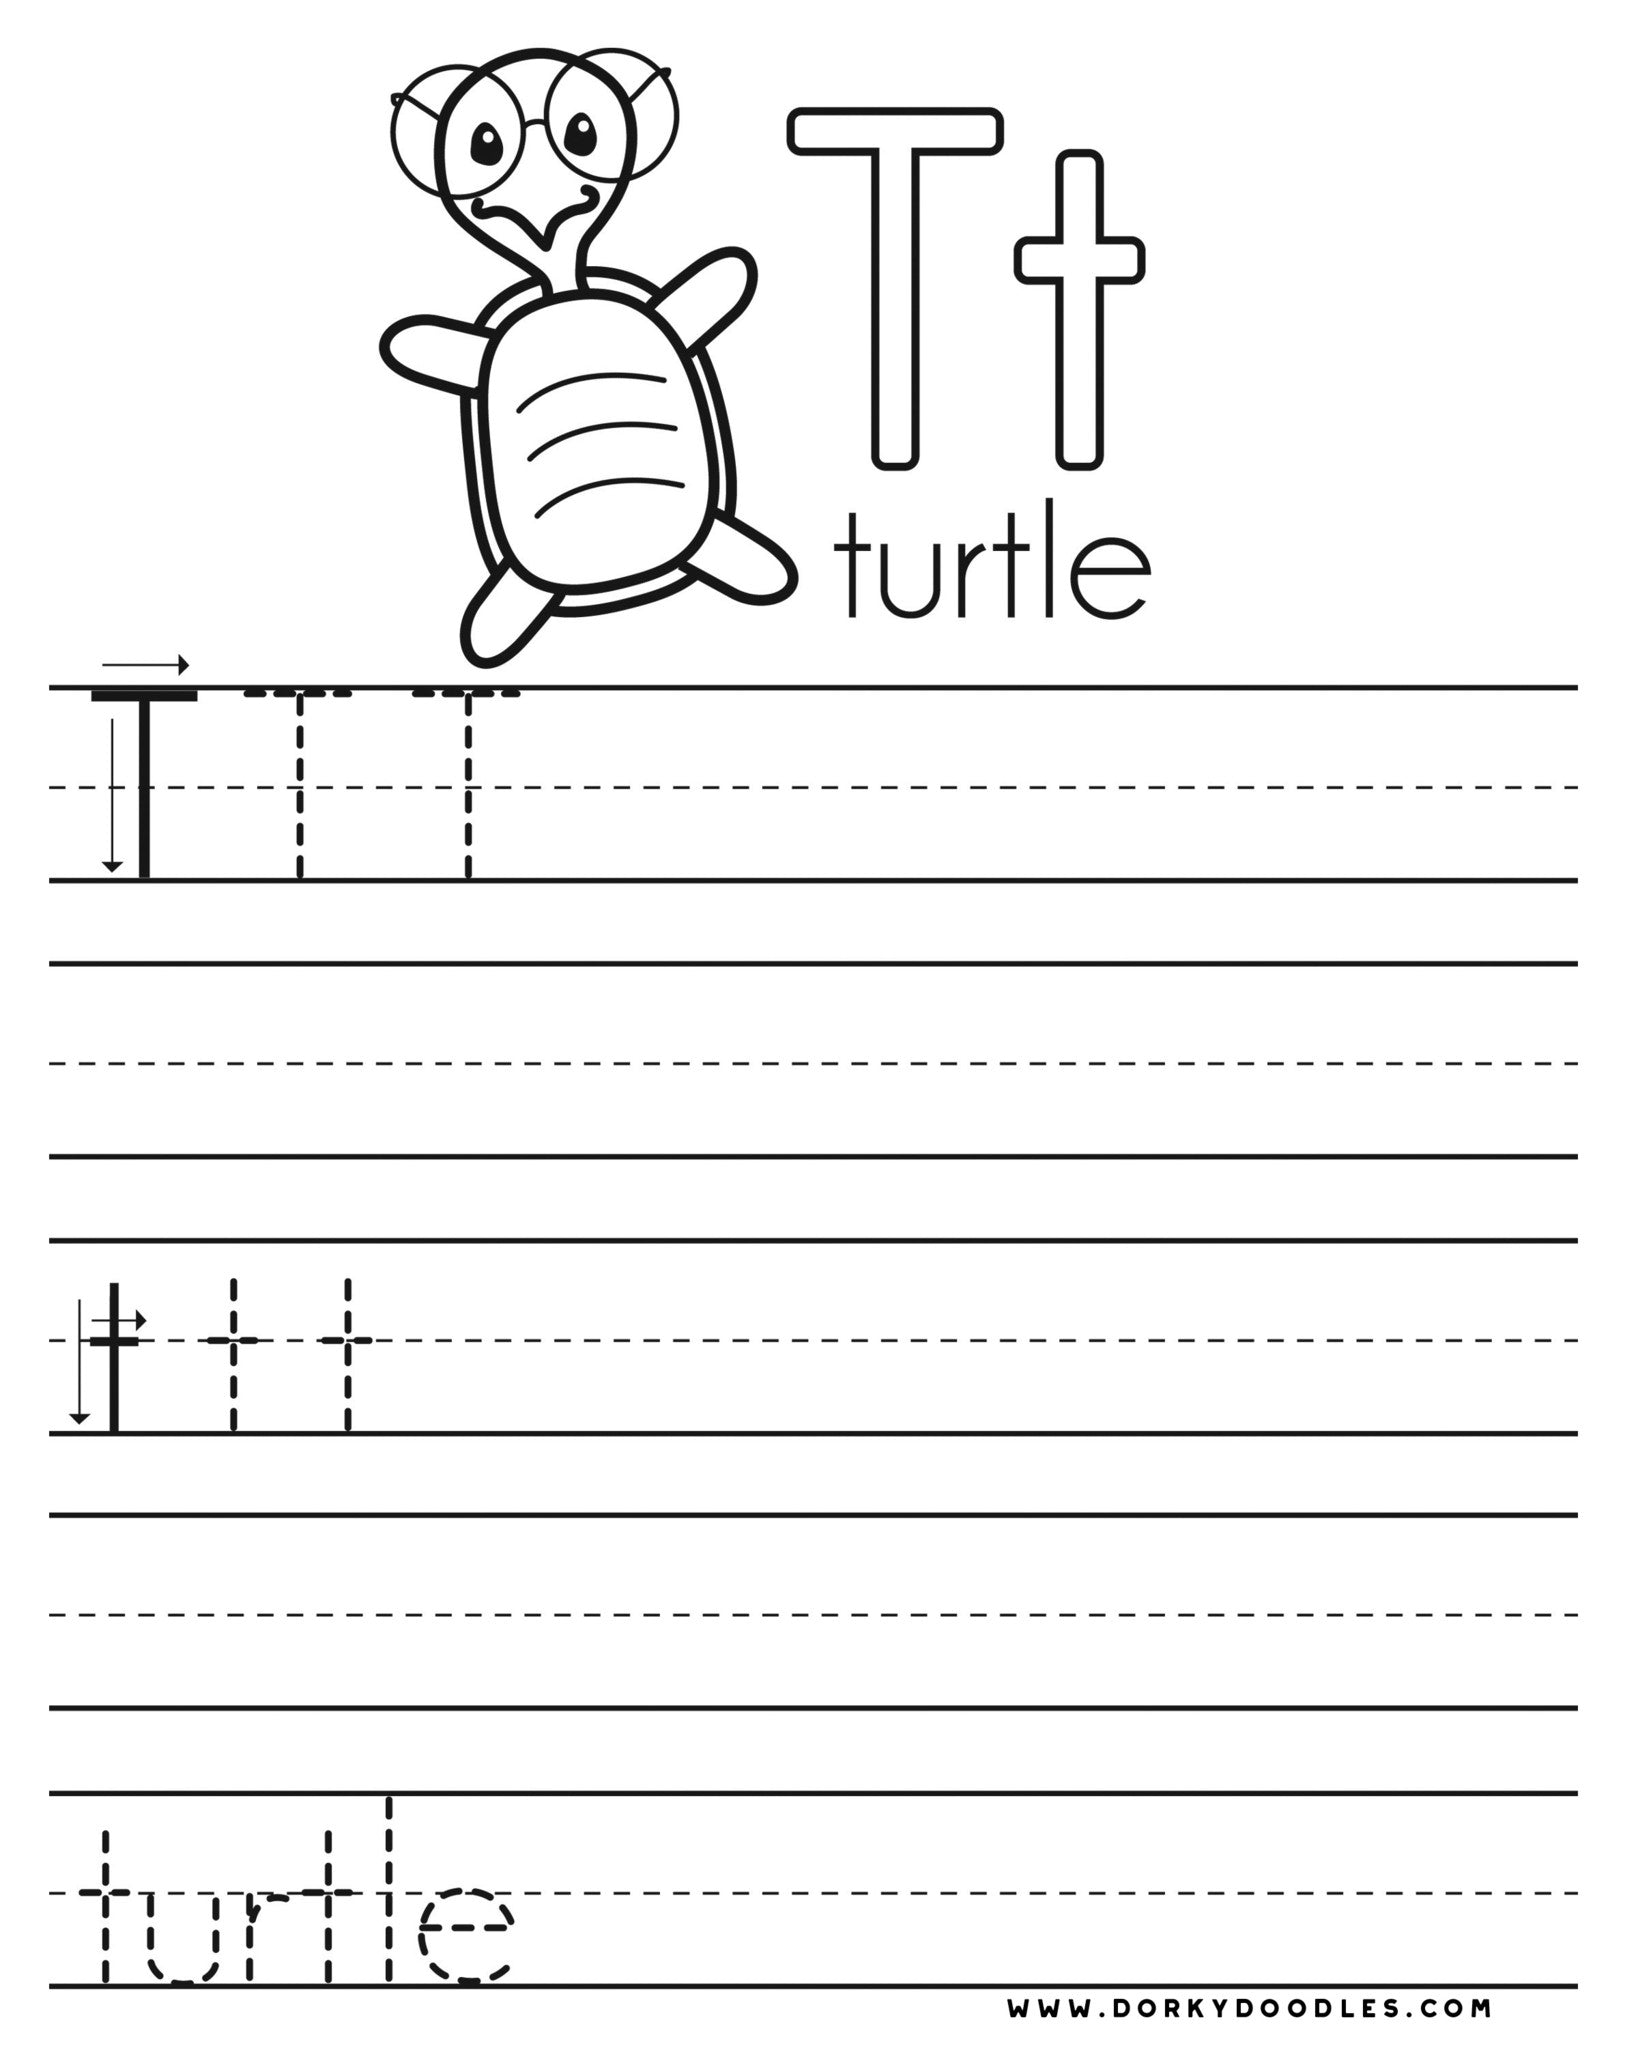 To Get These Free Printable Learning Worksheets Just Right Click On The Images Below And Select Print Or Save